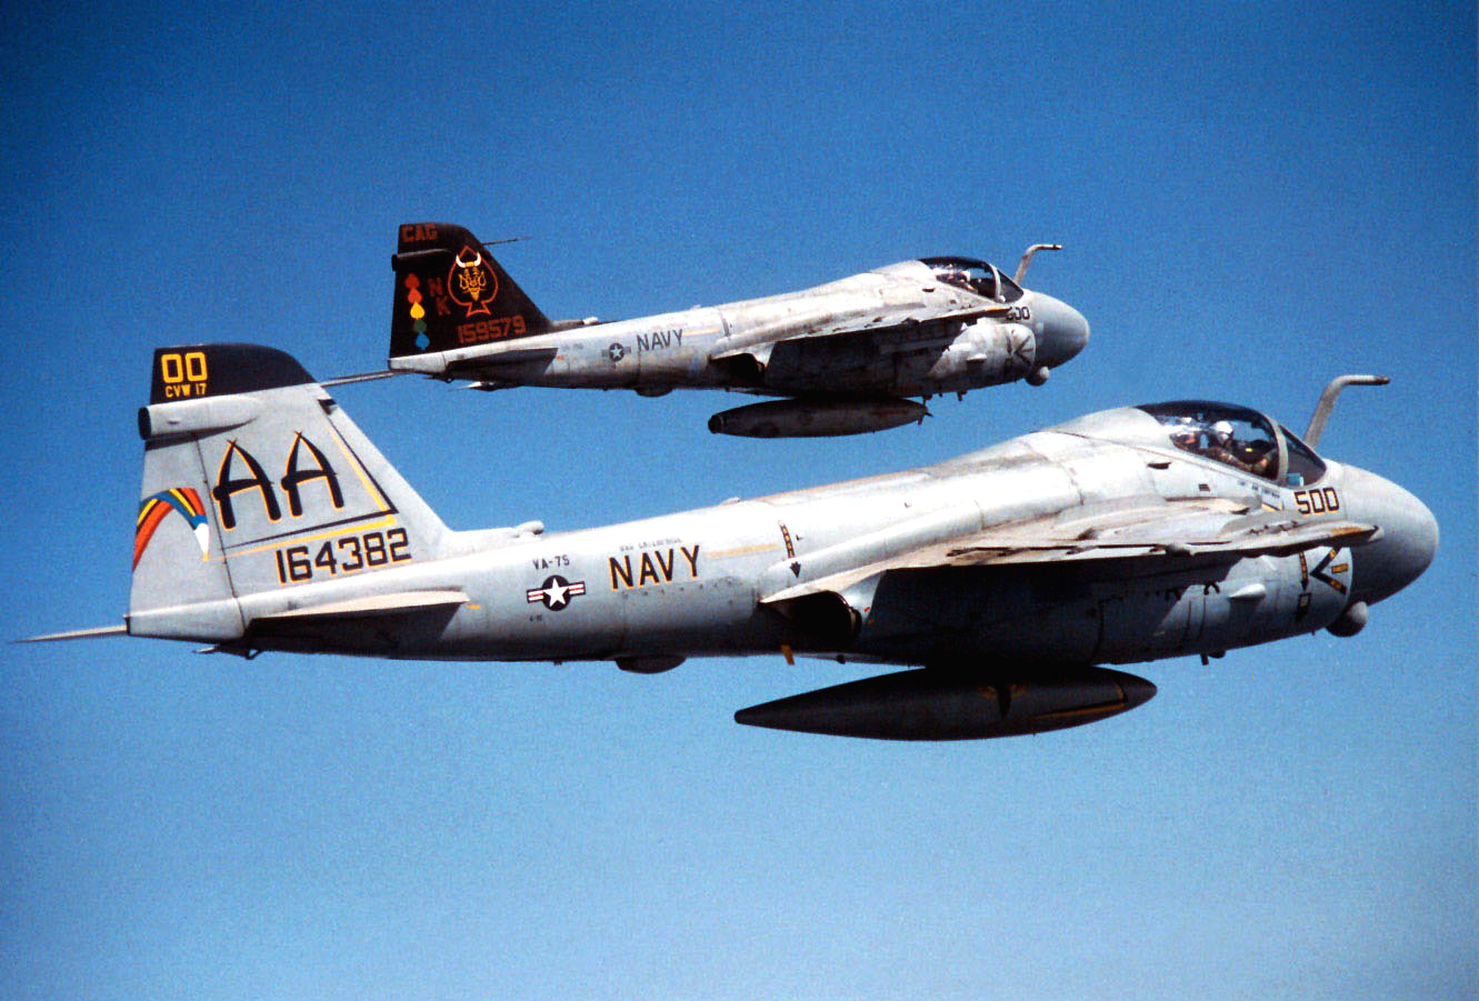 Grumman A-6 Intruder